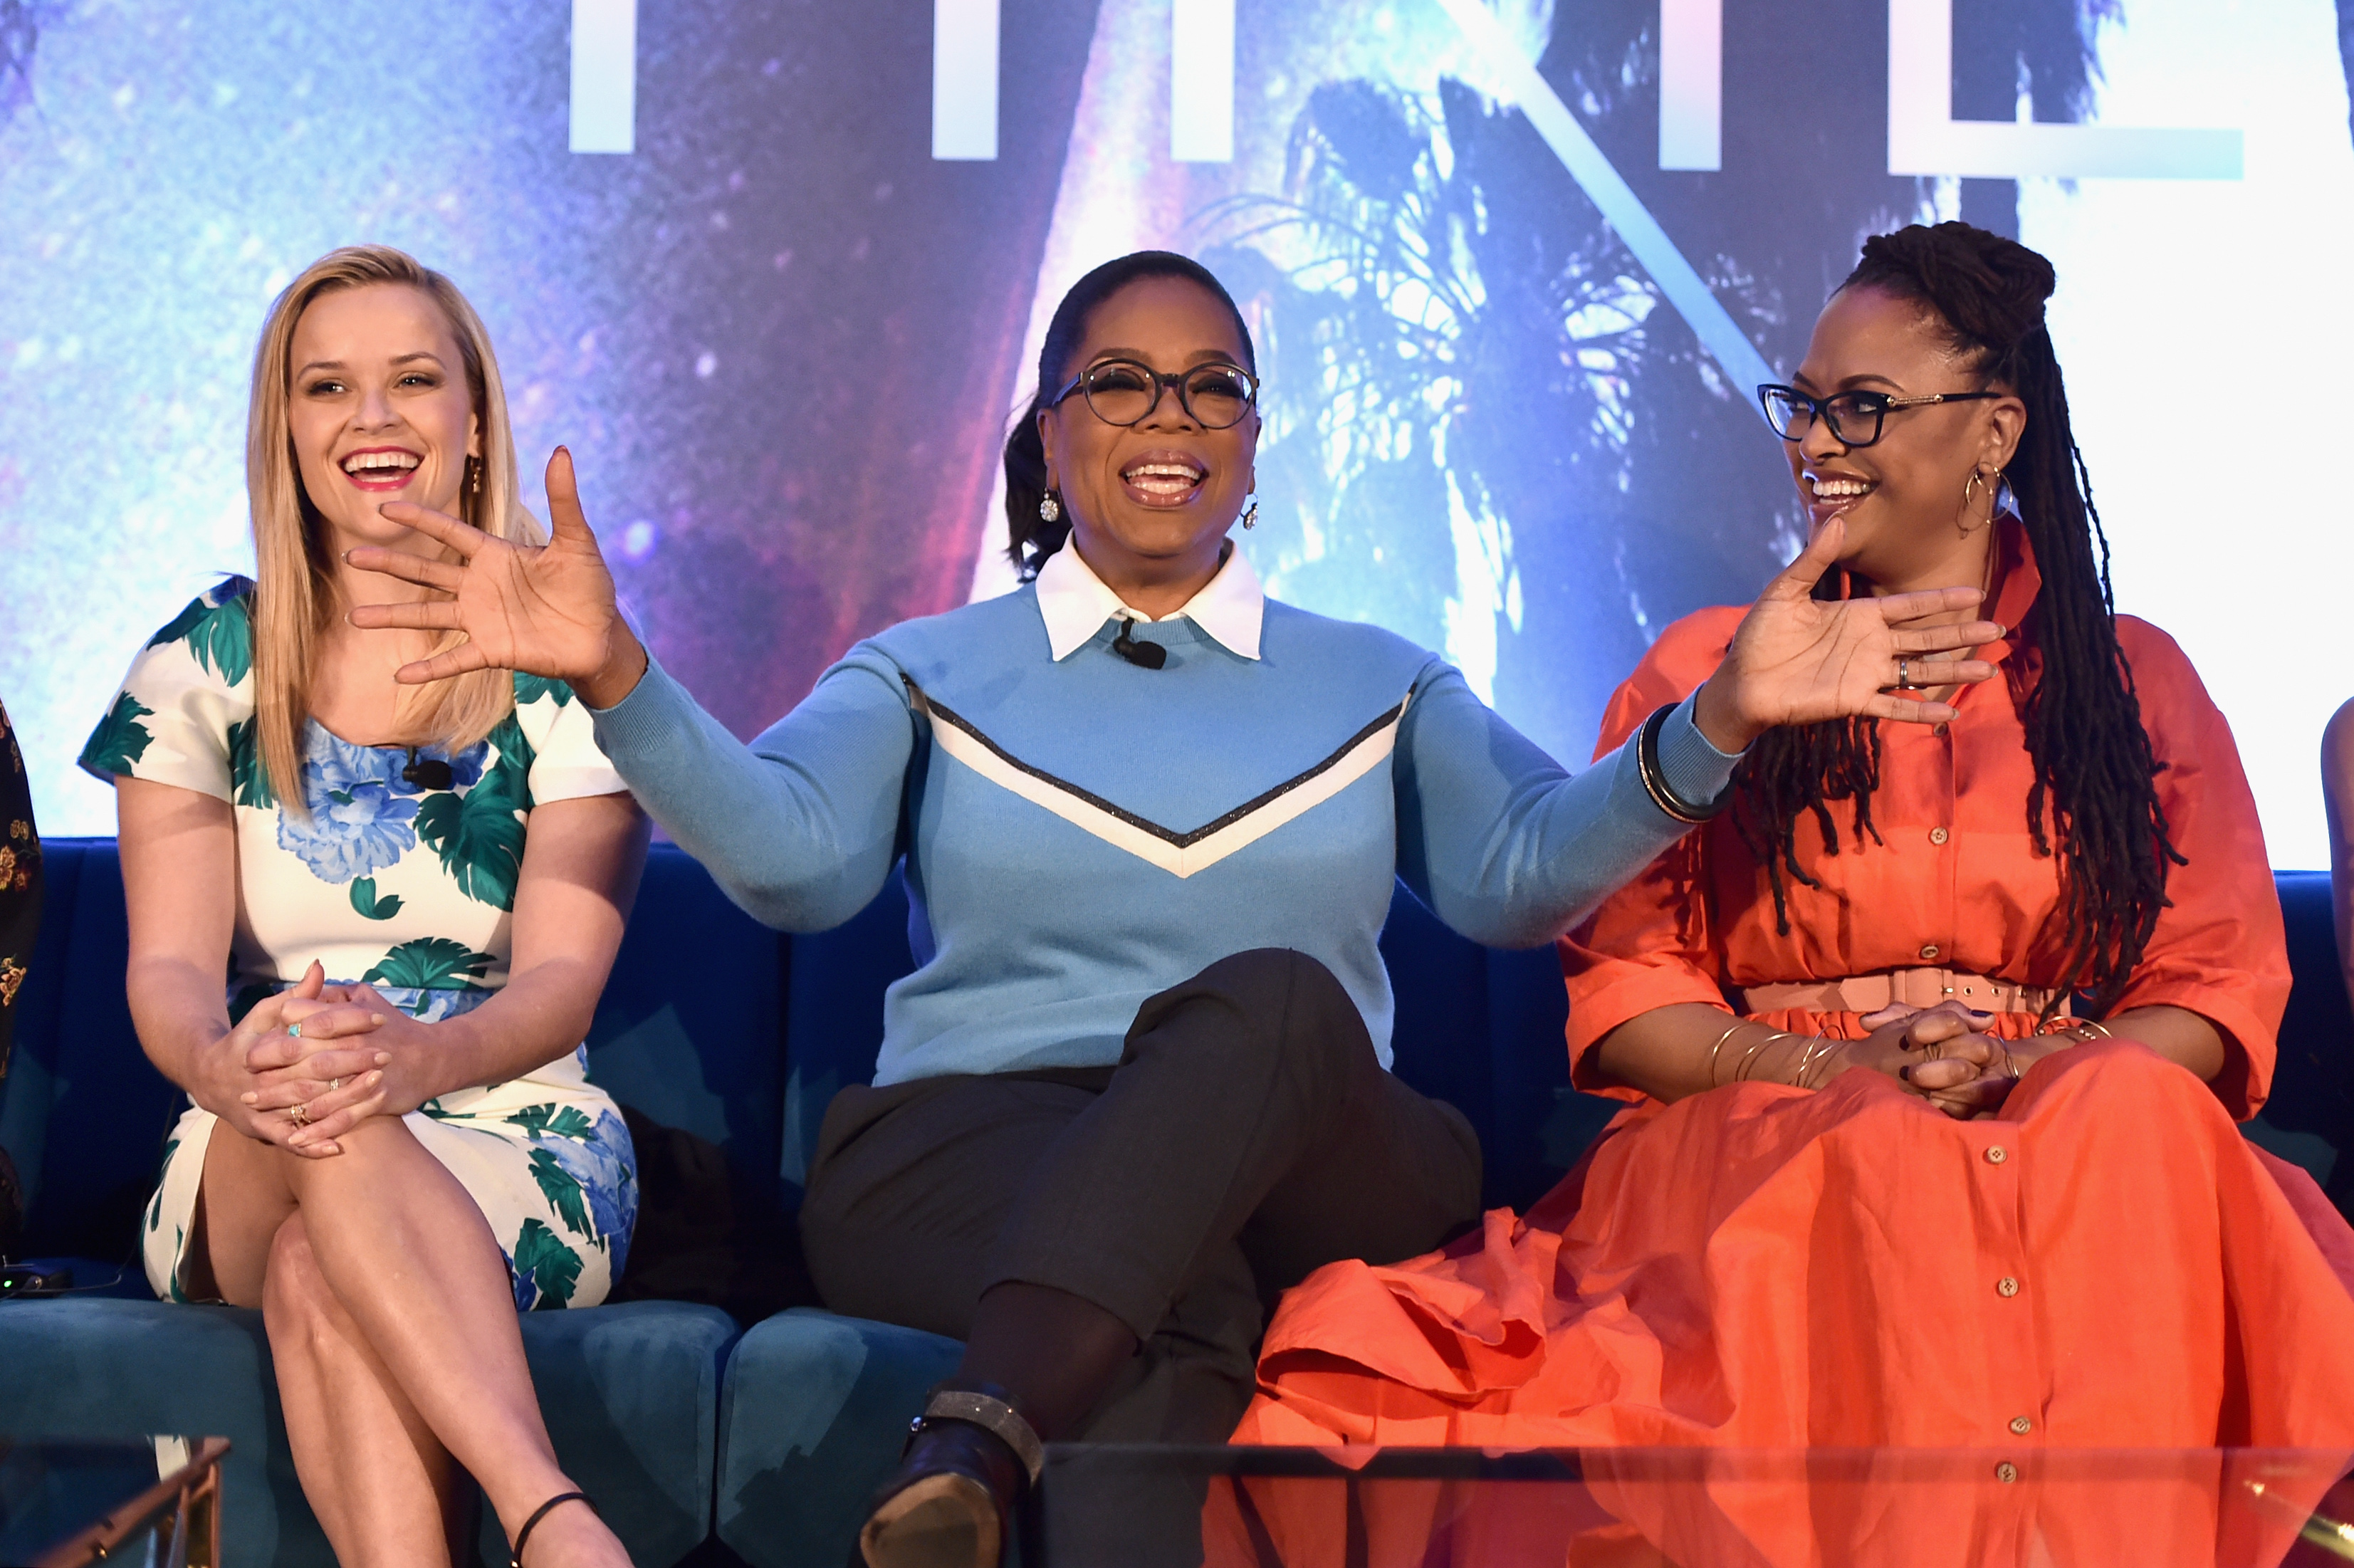 Reese Witherspoon, Oprah Winfrey, Ava DuVernay